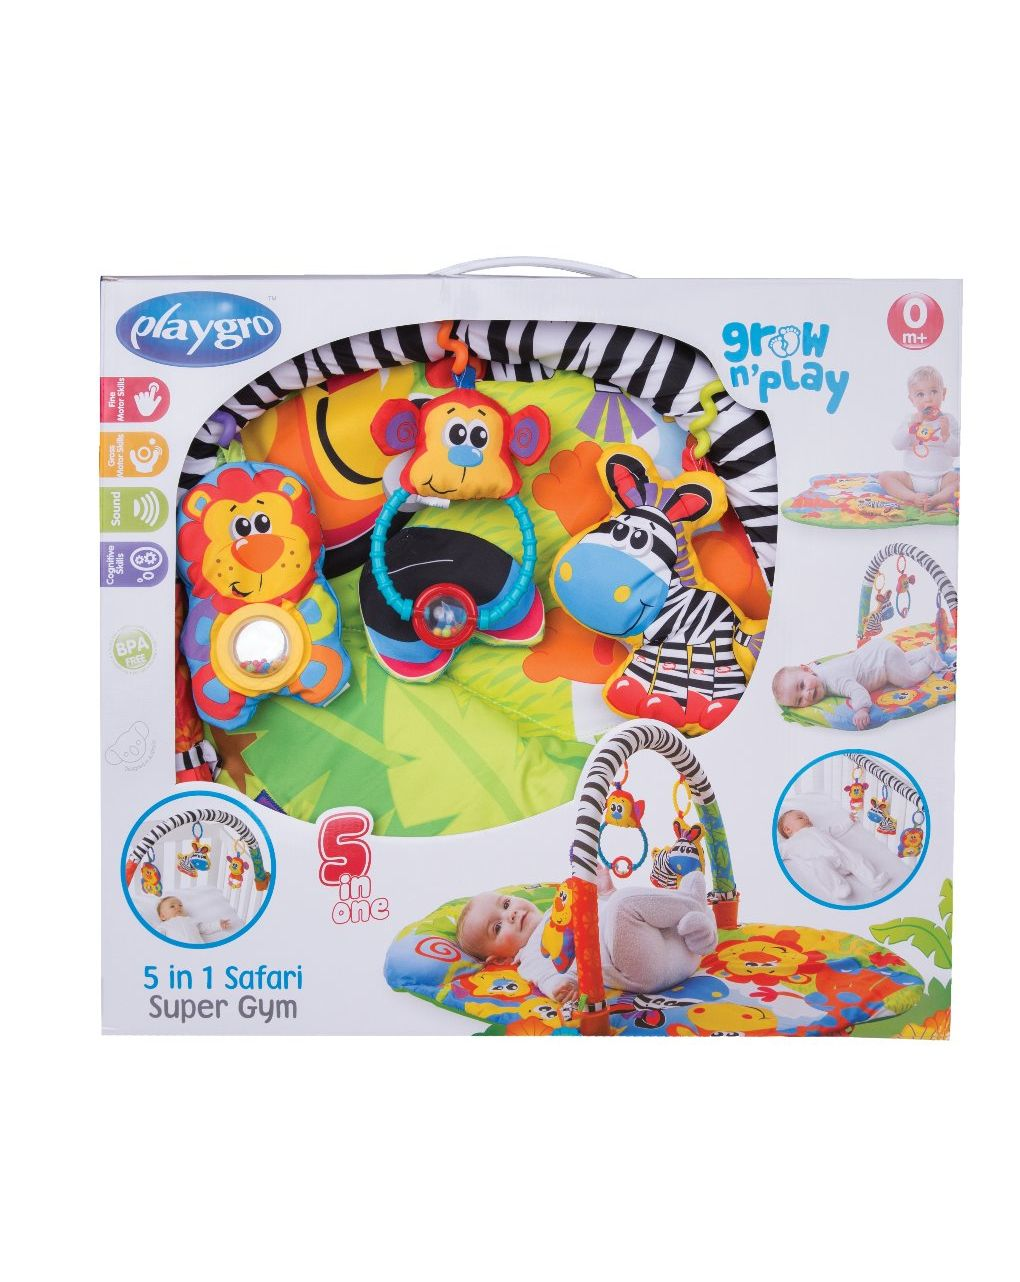 Palestrina 5in1 safari super gym (0m+) - Playgro